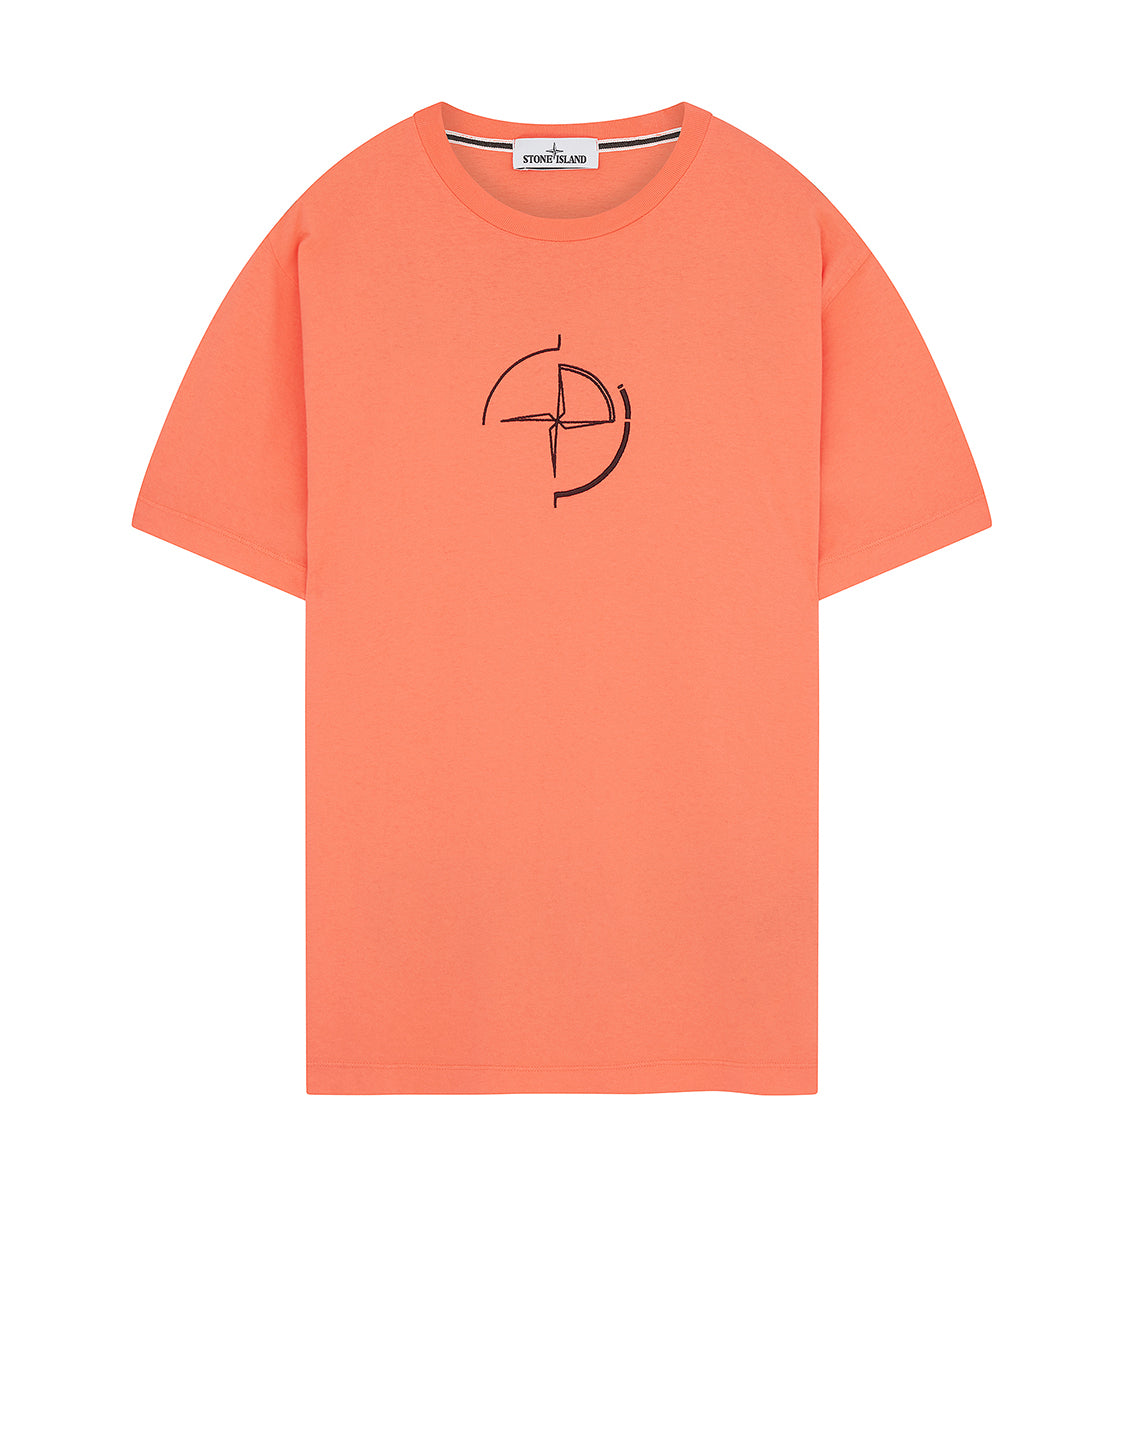 2NS89 'DATA SCAN' T-Shirt in Orange Red